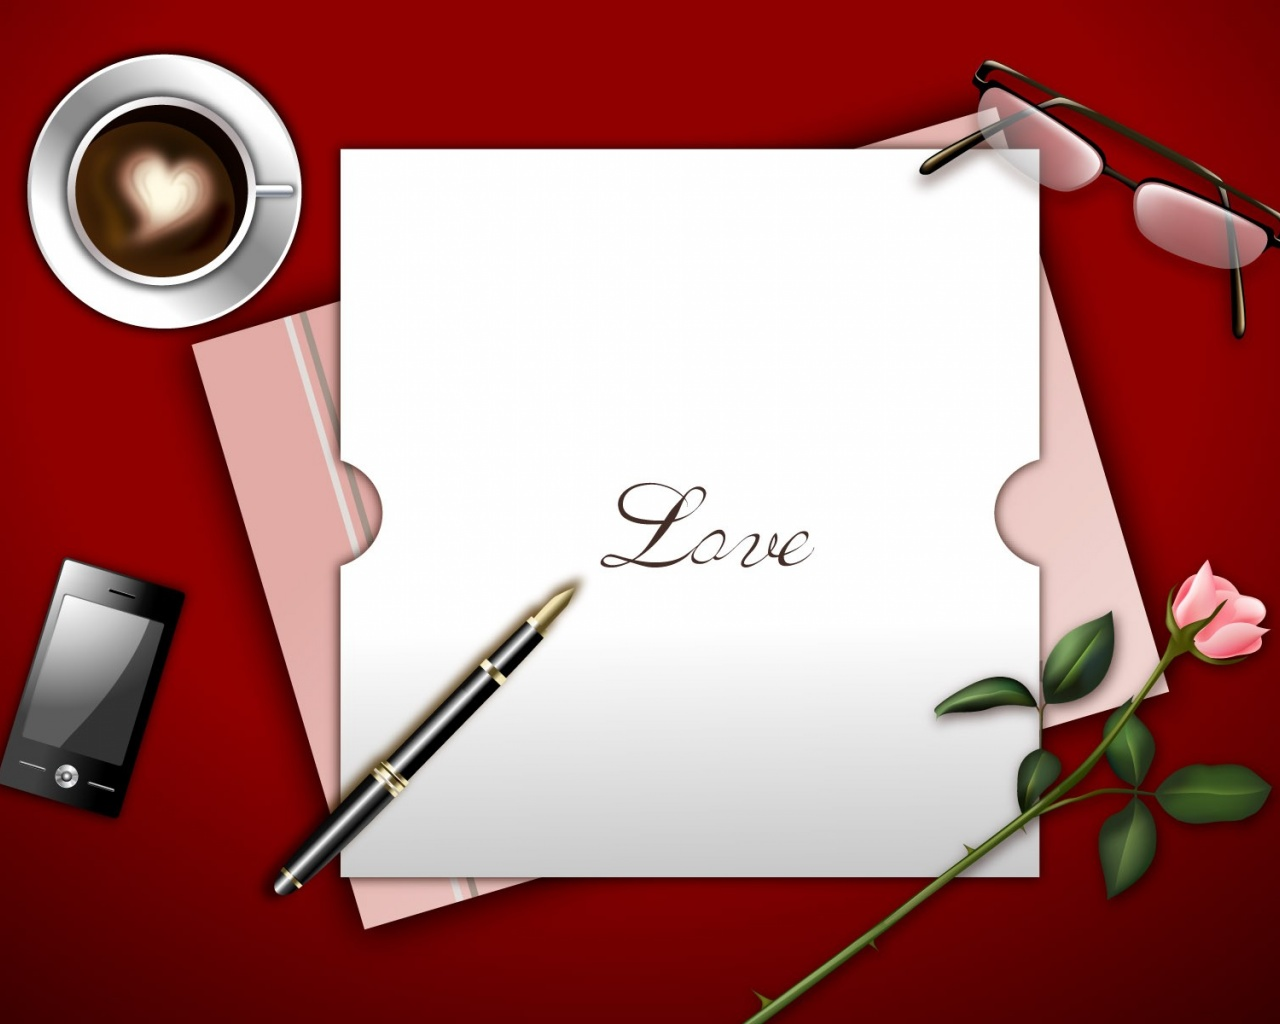 Love Letter Hd Pictures Odia I Love You 403414 Hd Wallpaper